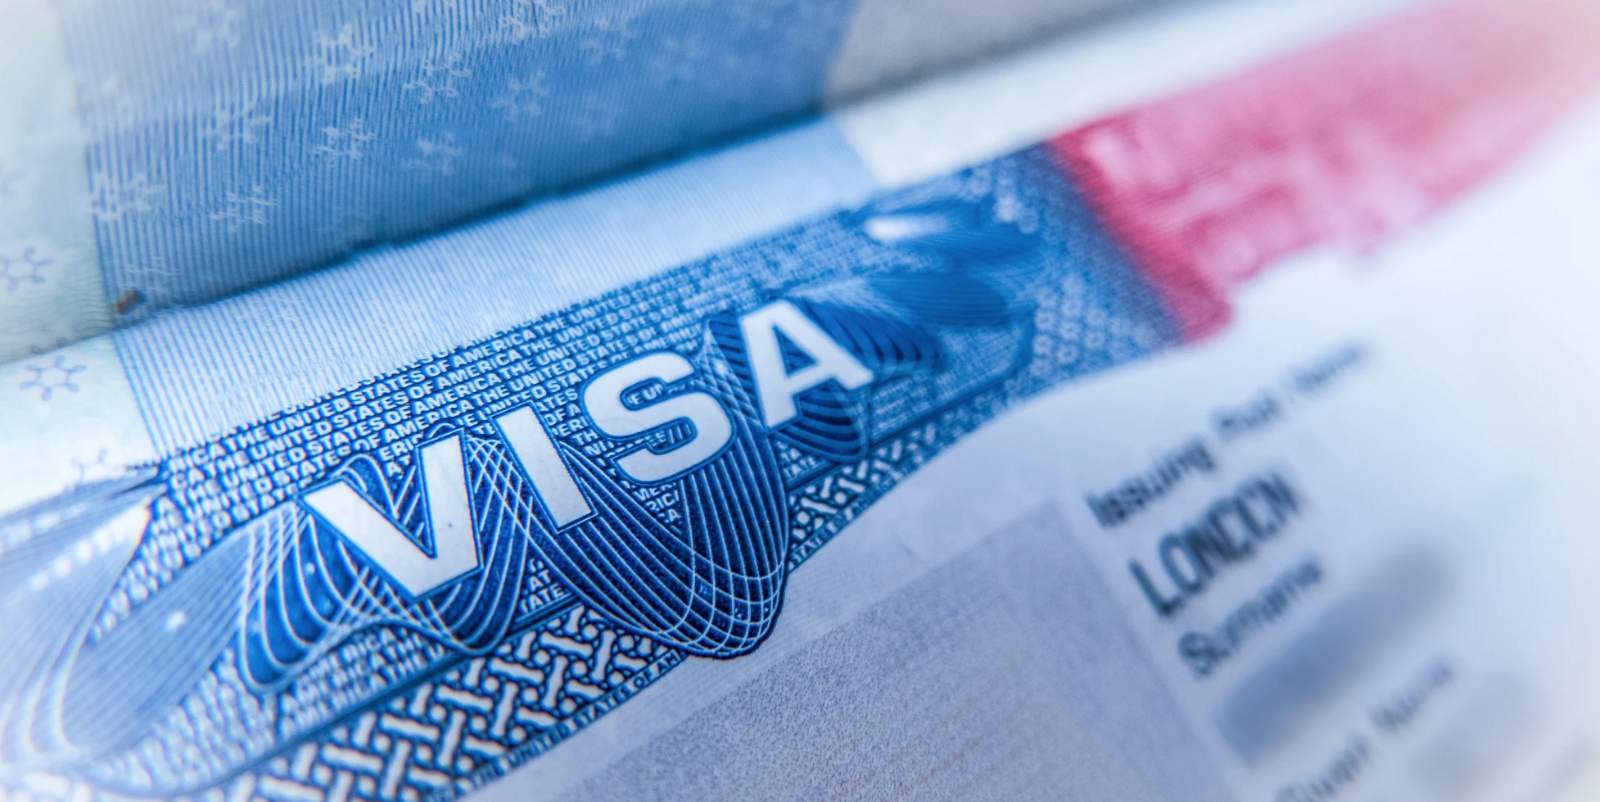 4 Tips to Increase Your Chances of Getting an H-1B Visa